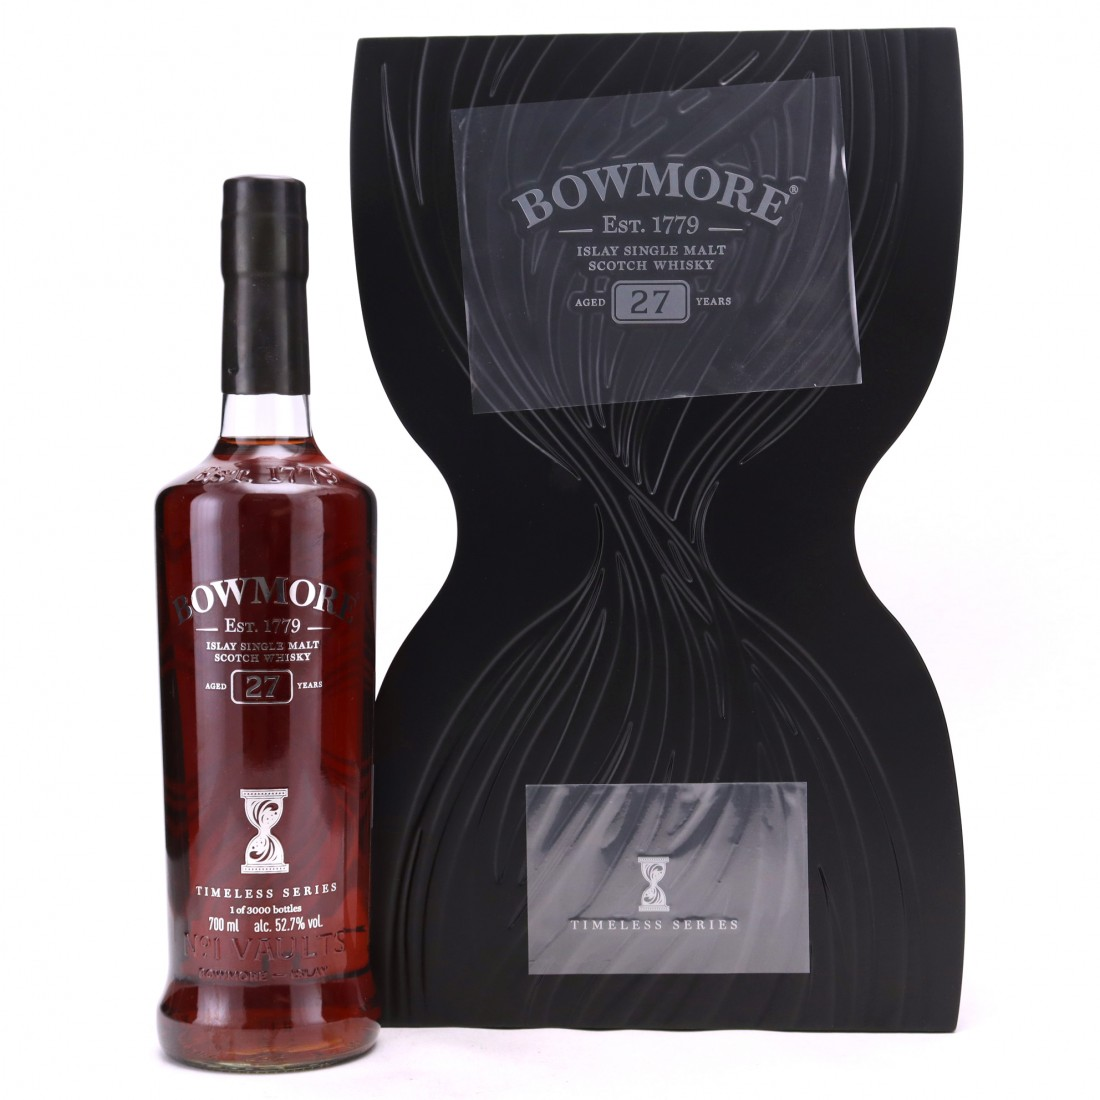 Bowmore 27 Year Old Timeless Series